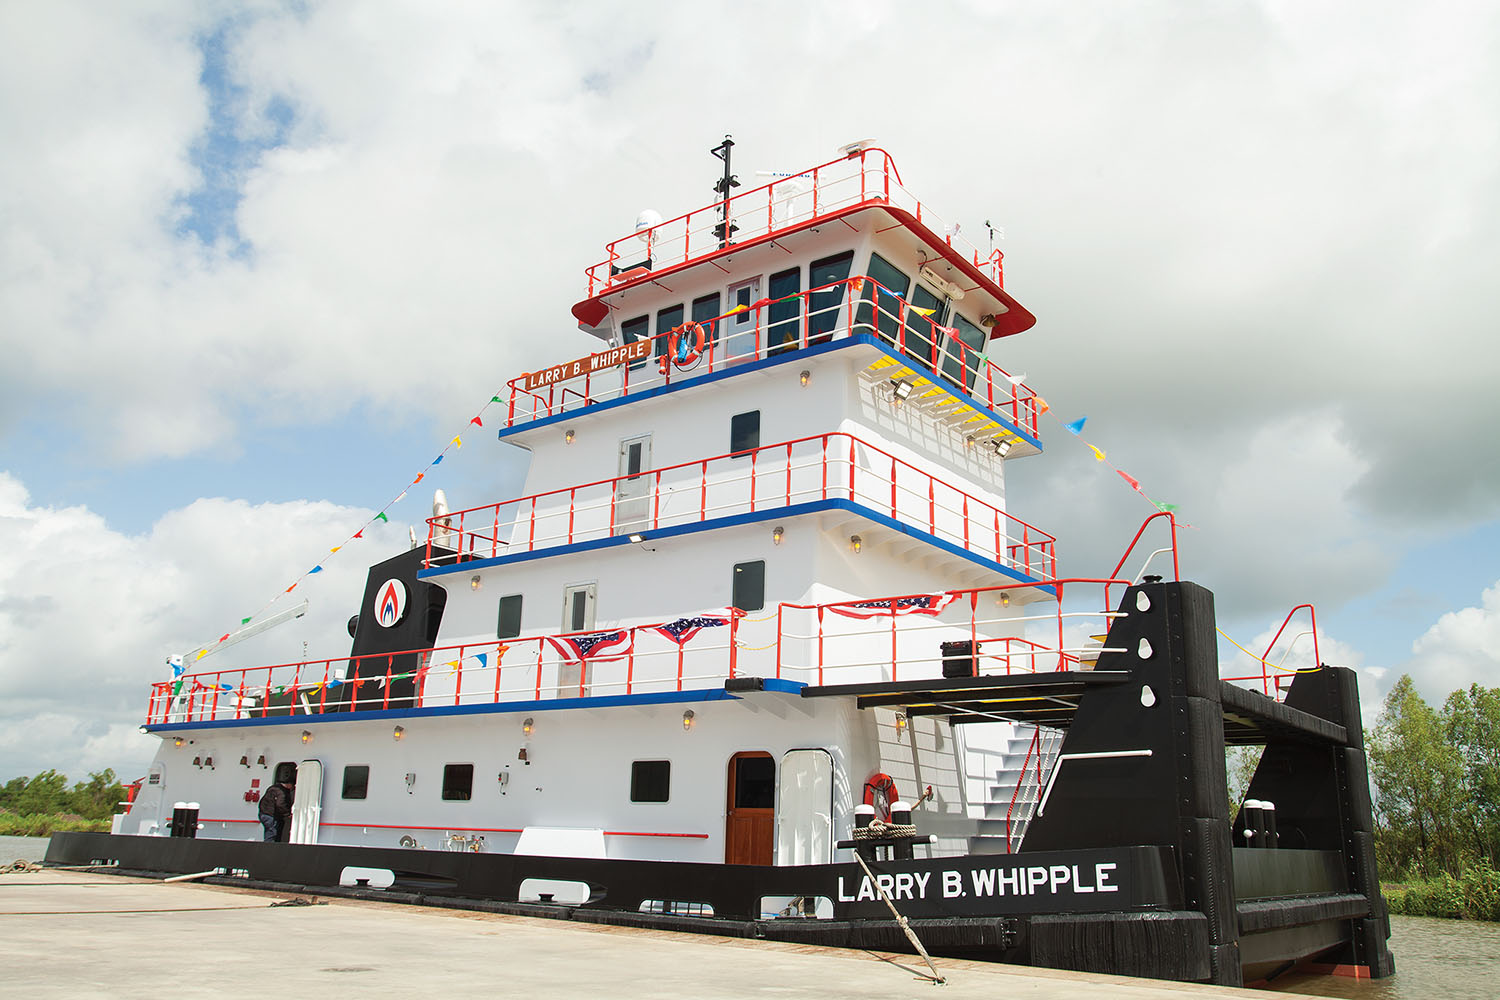 The 2,000 hp. Mv. Larry B. Whipple was built for Maritime Partners LLC by Intracoastal Iron Works. (Photo by Frank McCormack)